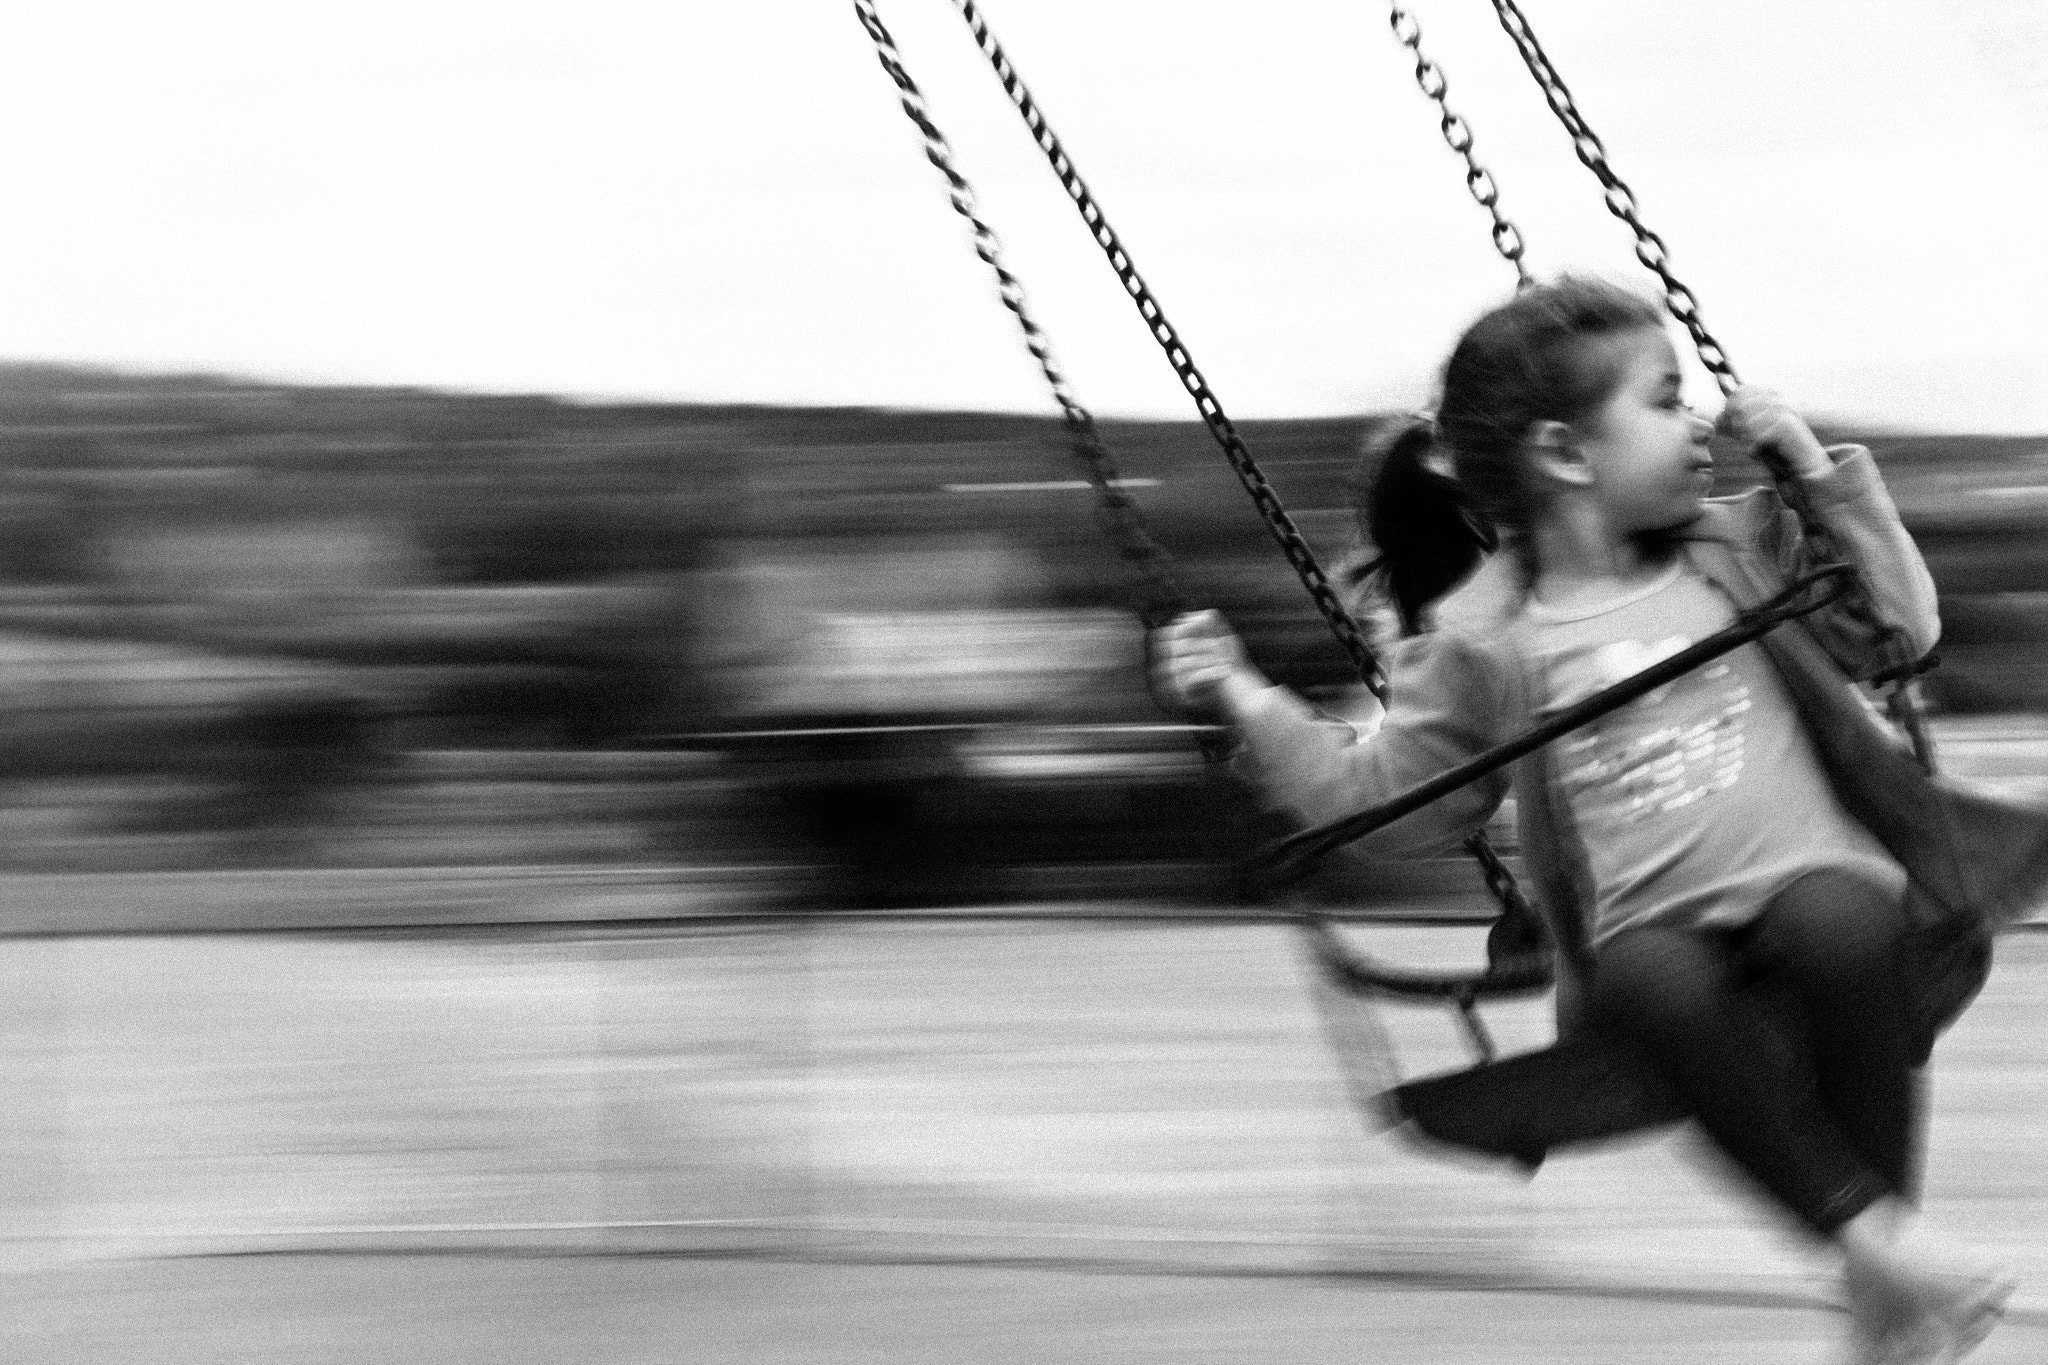 Photograph Swing by Heinrich Stofberg on 500px